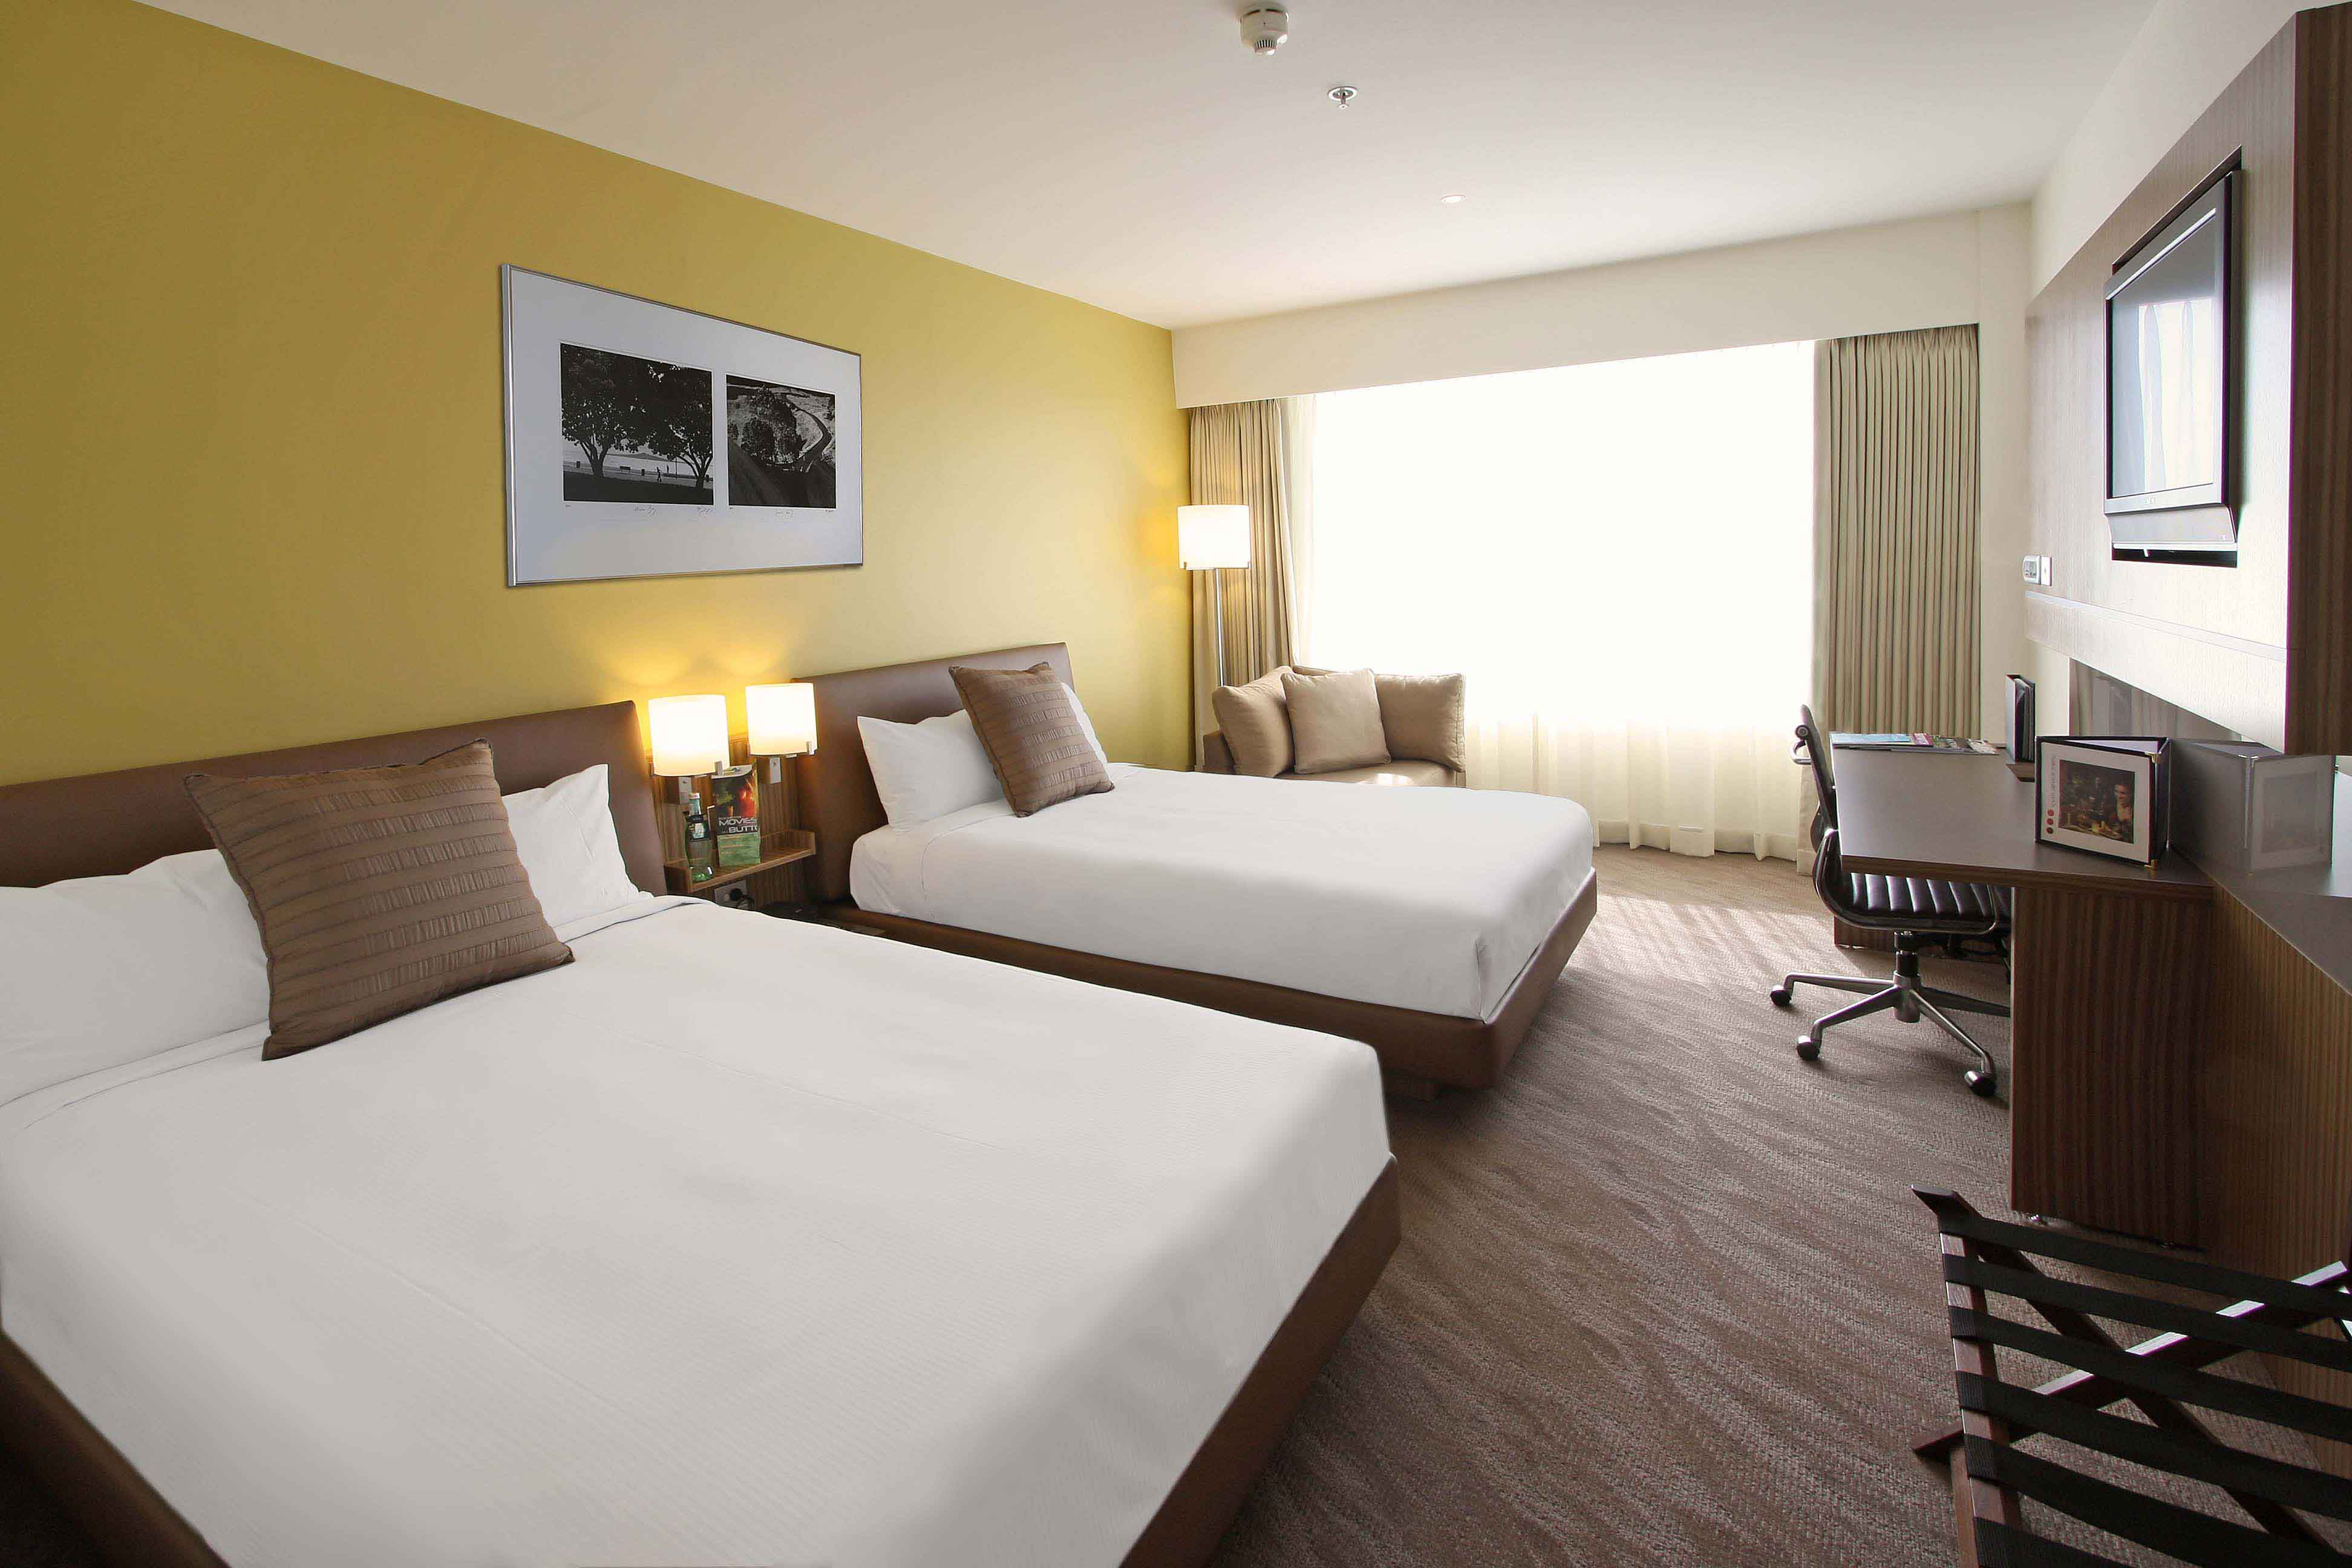 Superior Room with double twin beds. Experience increased connectivity to connect laptops, digital cameras and media players via 32